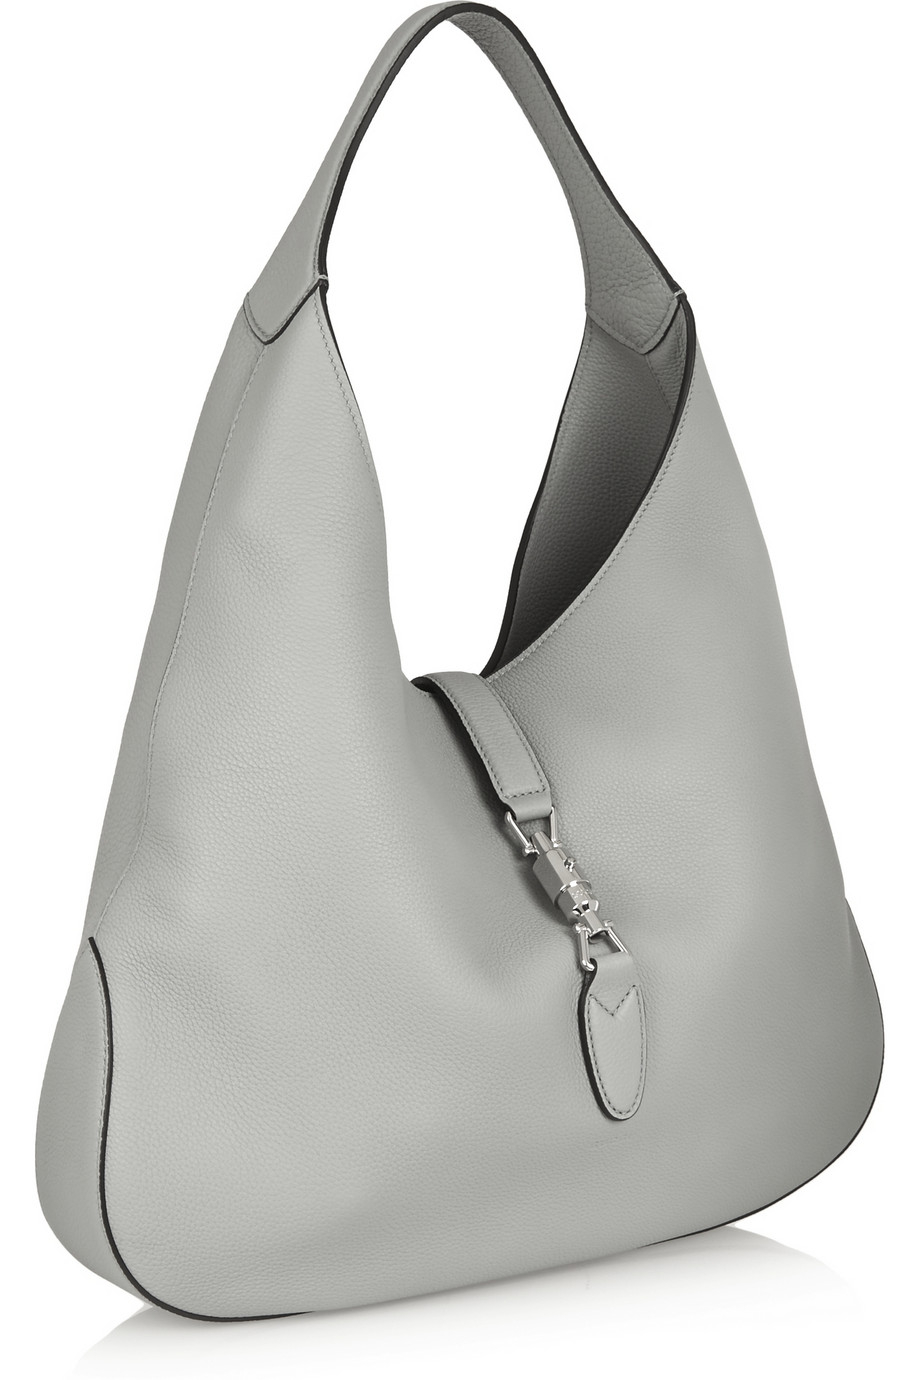 bd0b17ffdcac Gucci Jackie Soft Leather Hobo Bag | Stanford Center for Opportunity ...